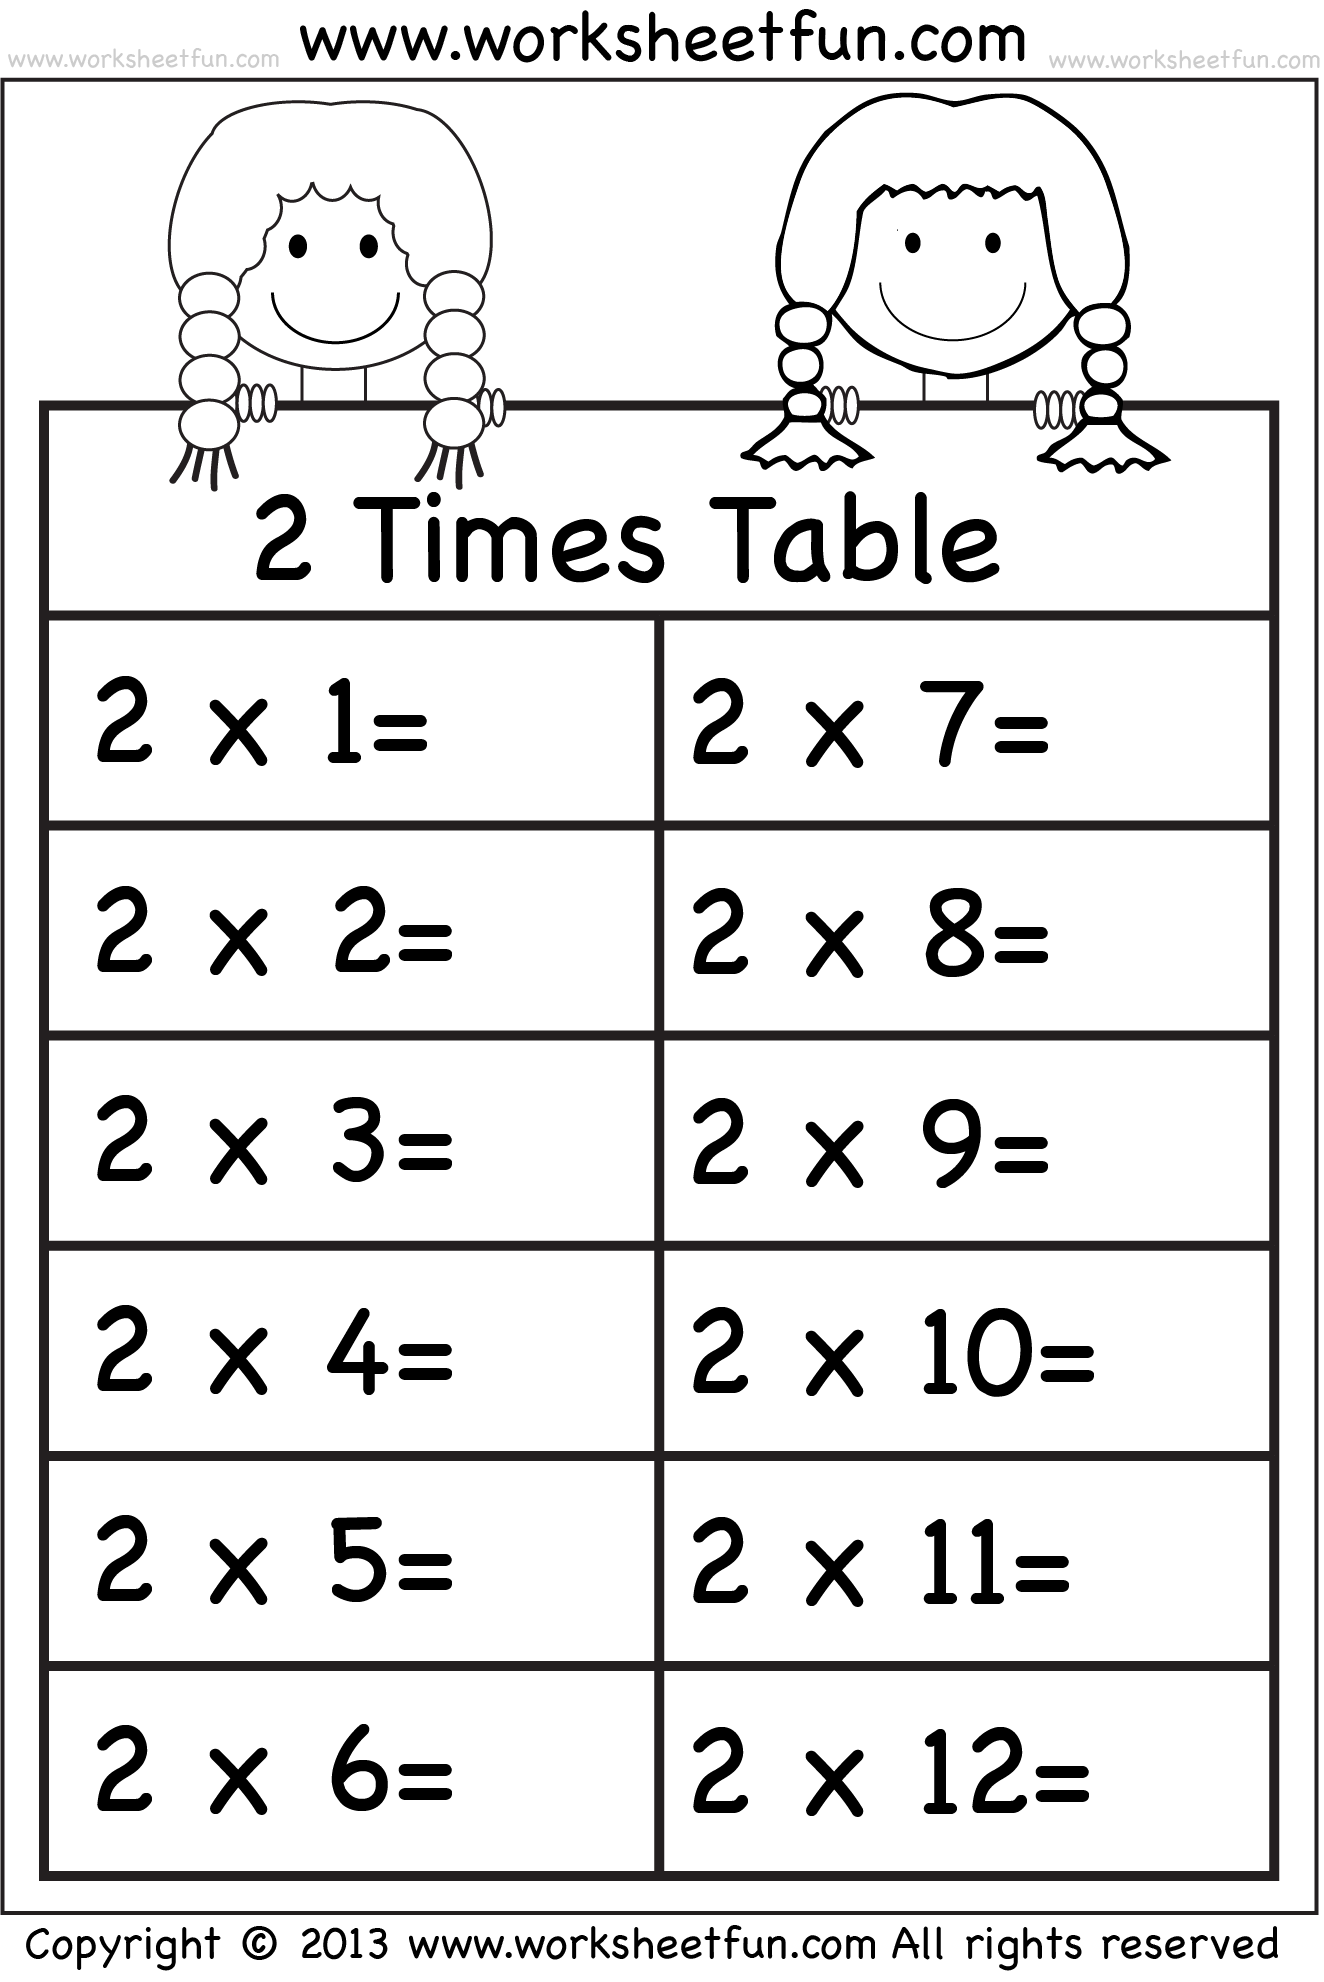 Times Tables Worksheets 2 3 4 5 6 7 8 9 10 11